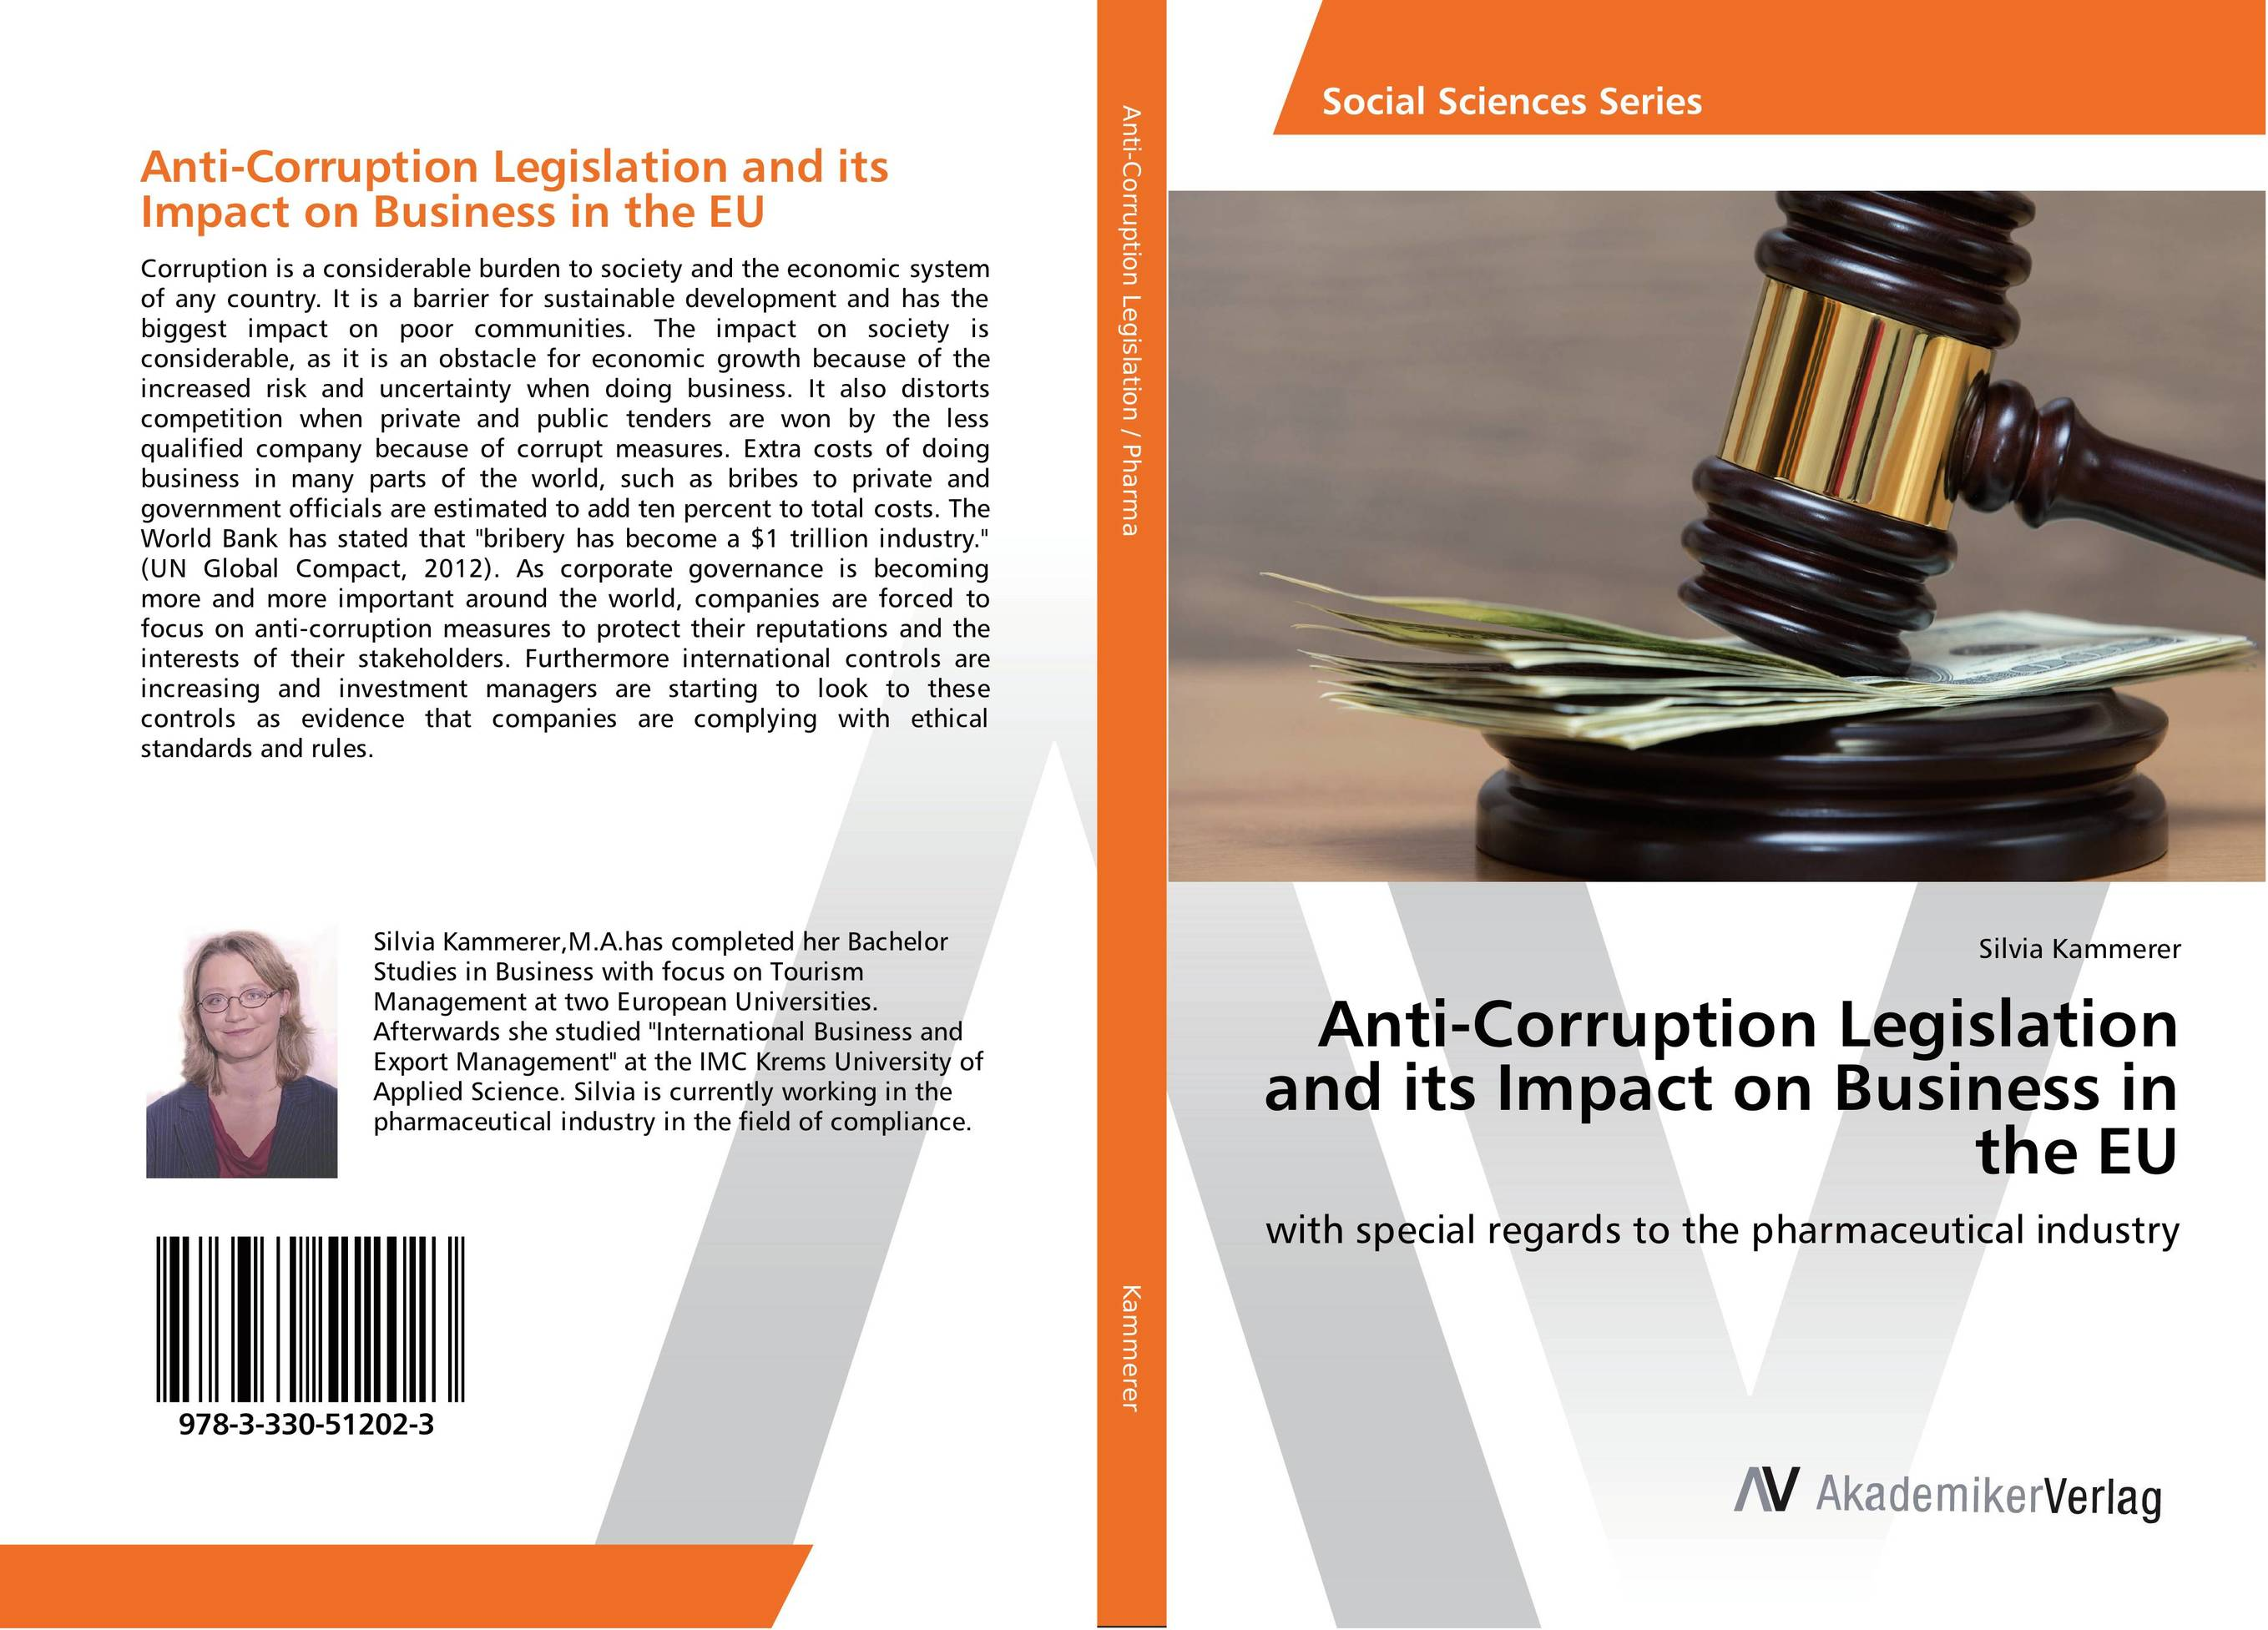 indonesias anti corruption law essay Political corruption is when laws and regulations are more or less systematically abused by the rulers, side-stepped, ignored, or even tailored to fit their interests2 2 from, the.